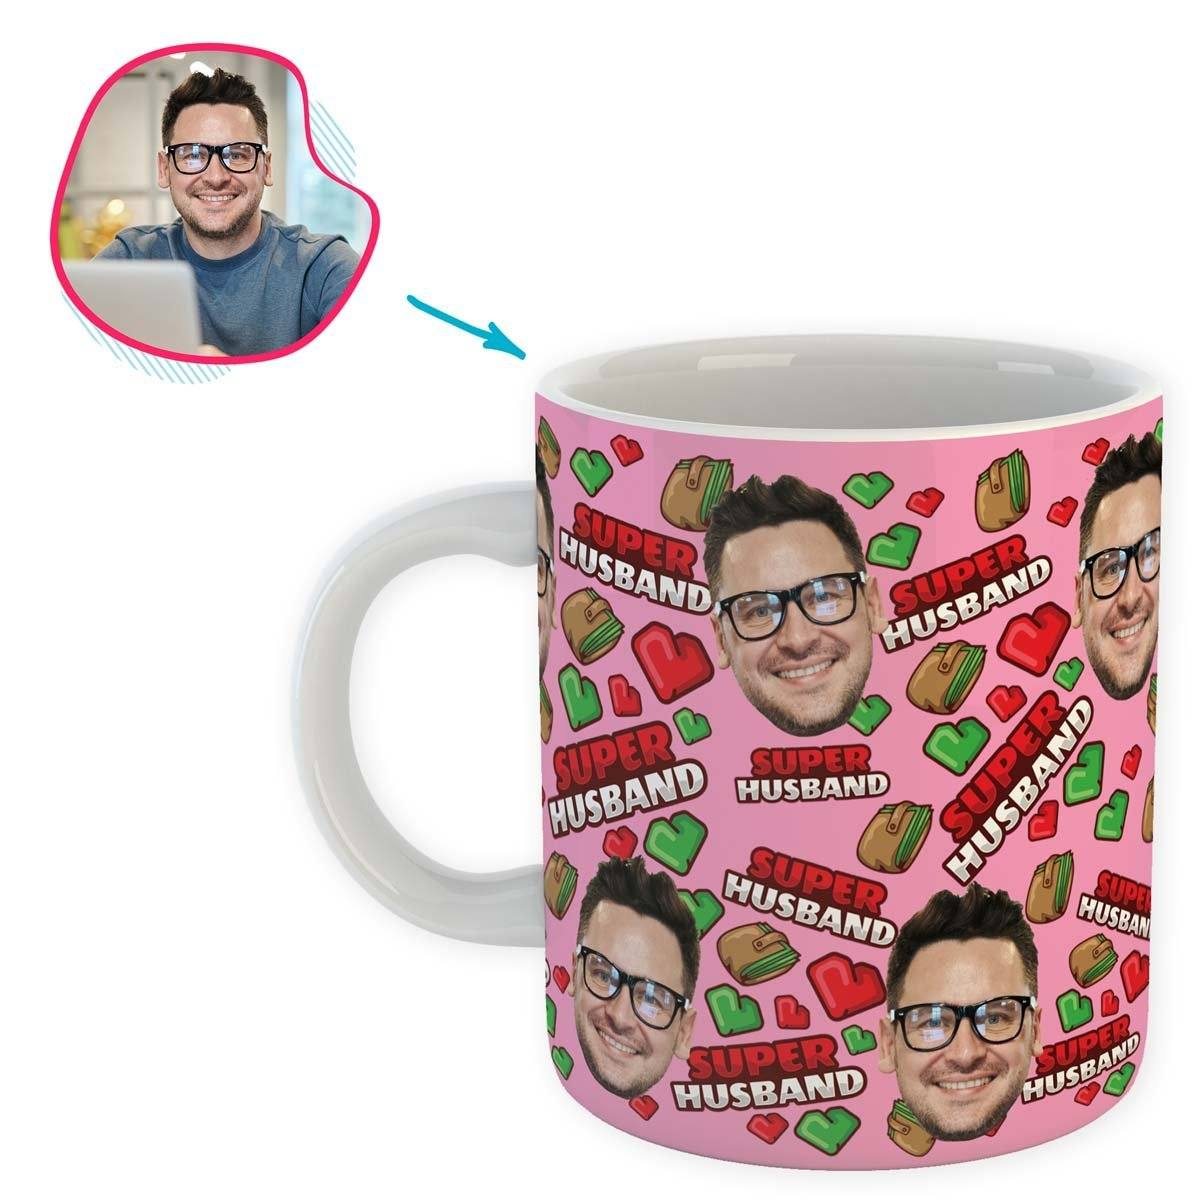 Pink Husband personalized mug with photo of face printed on it